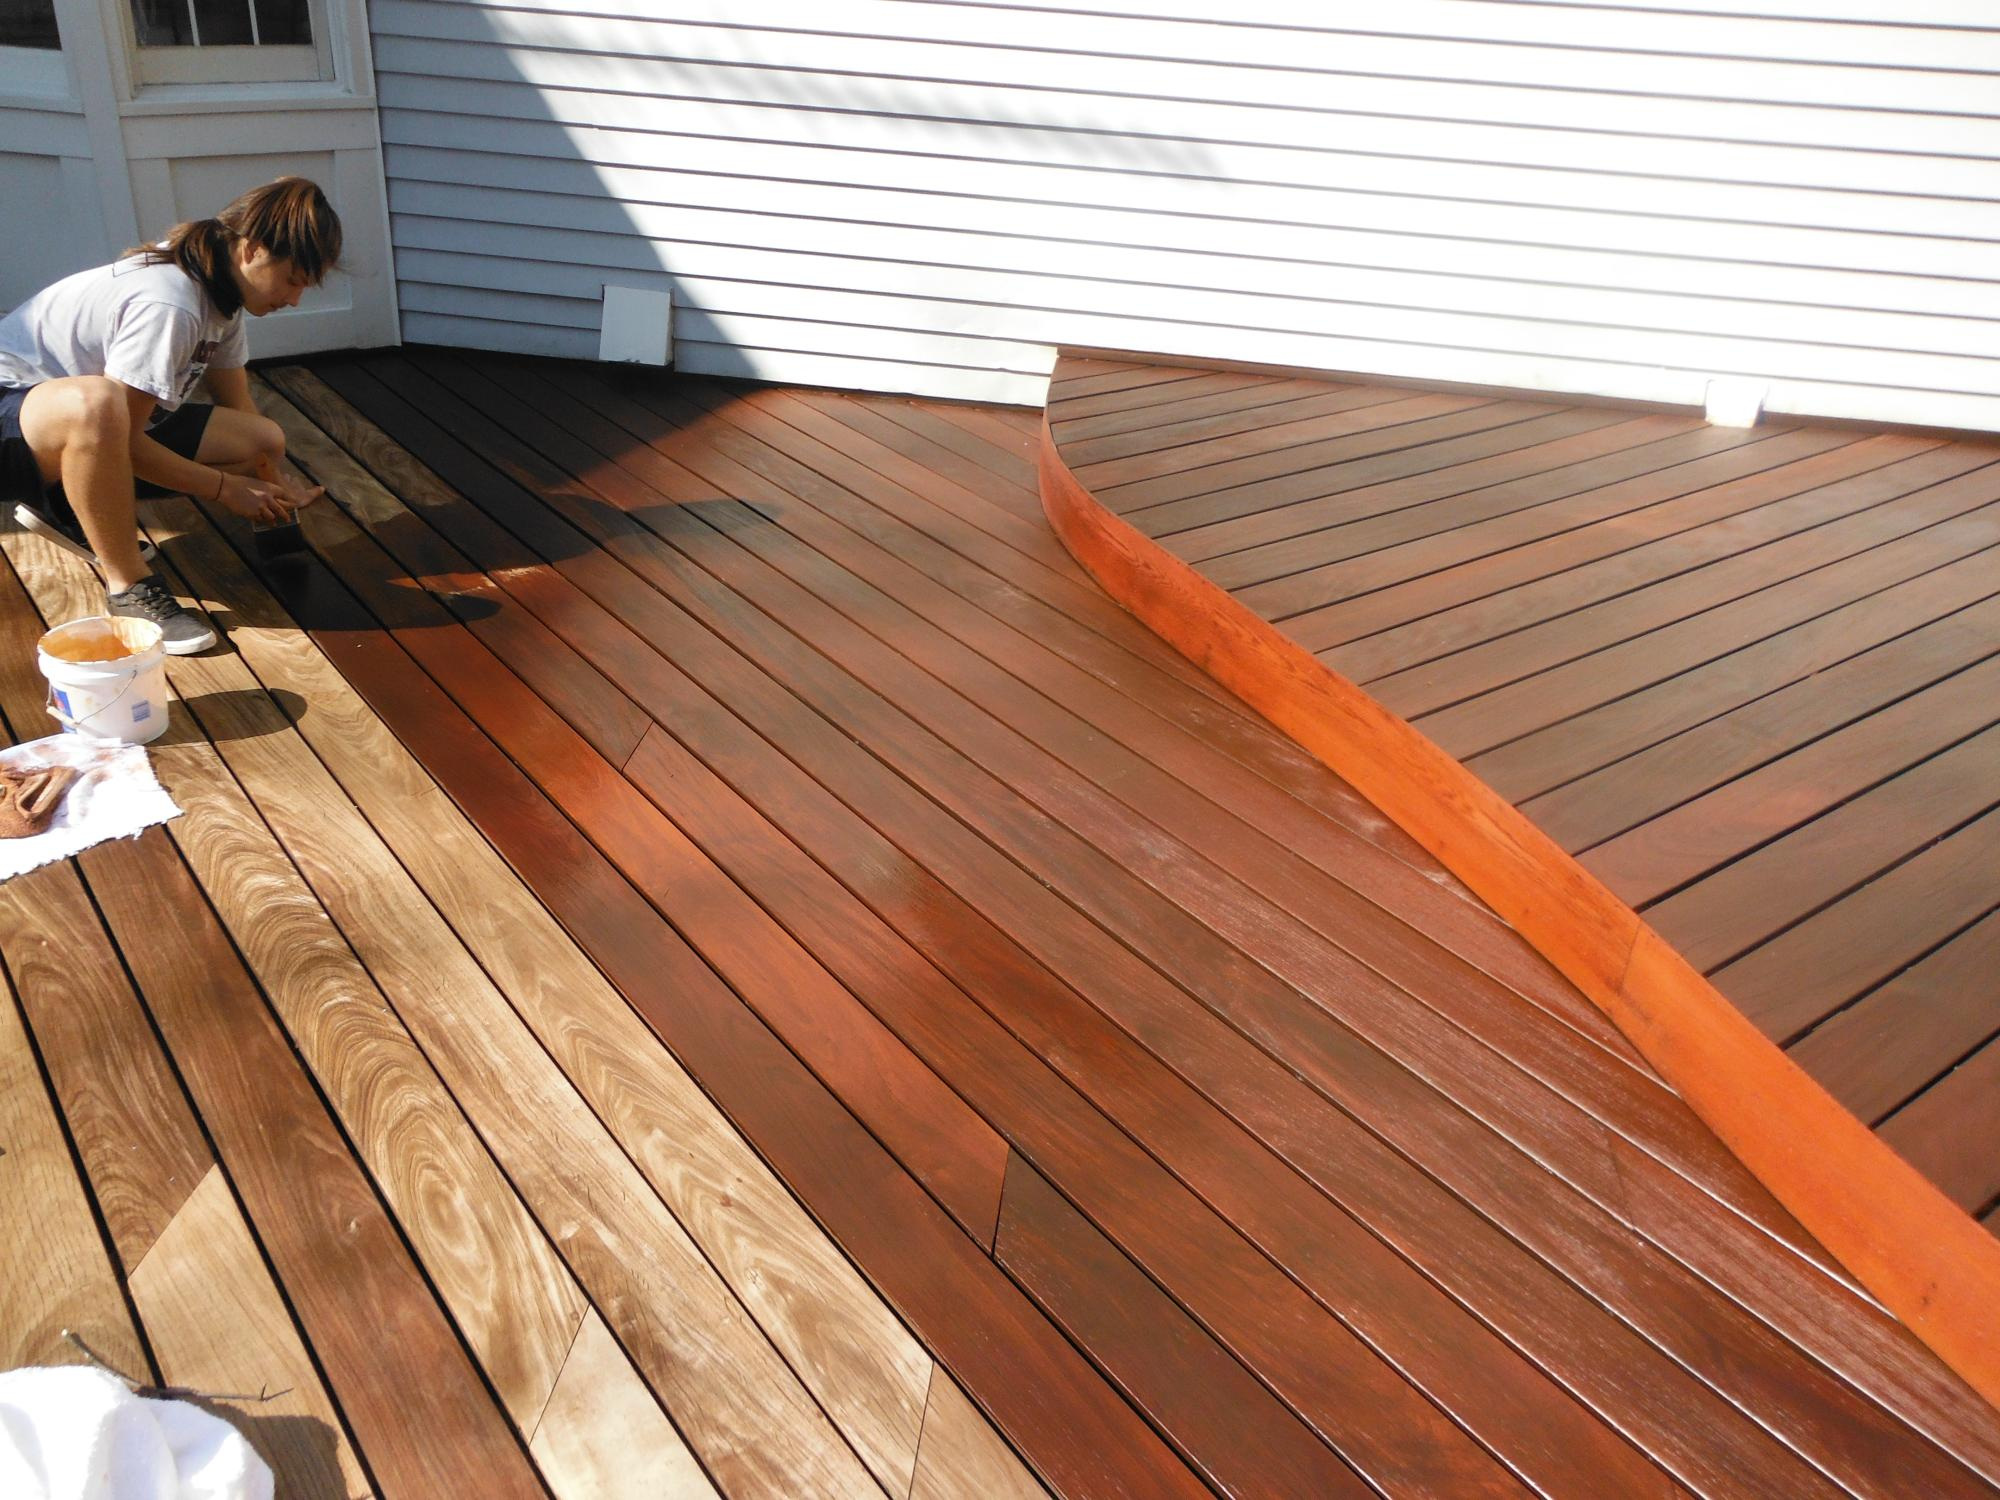 Sealing deck with IPE oil